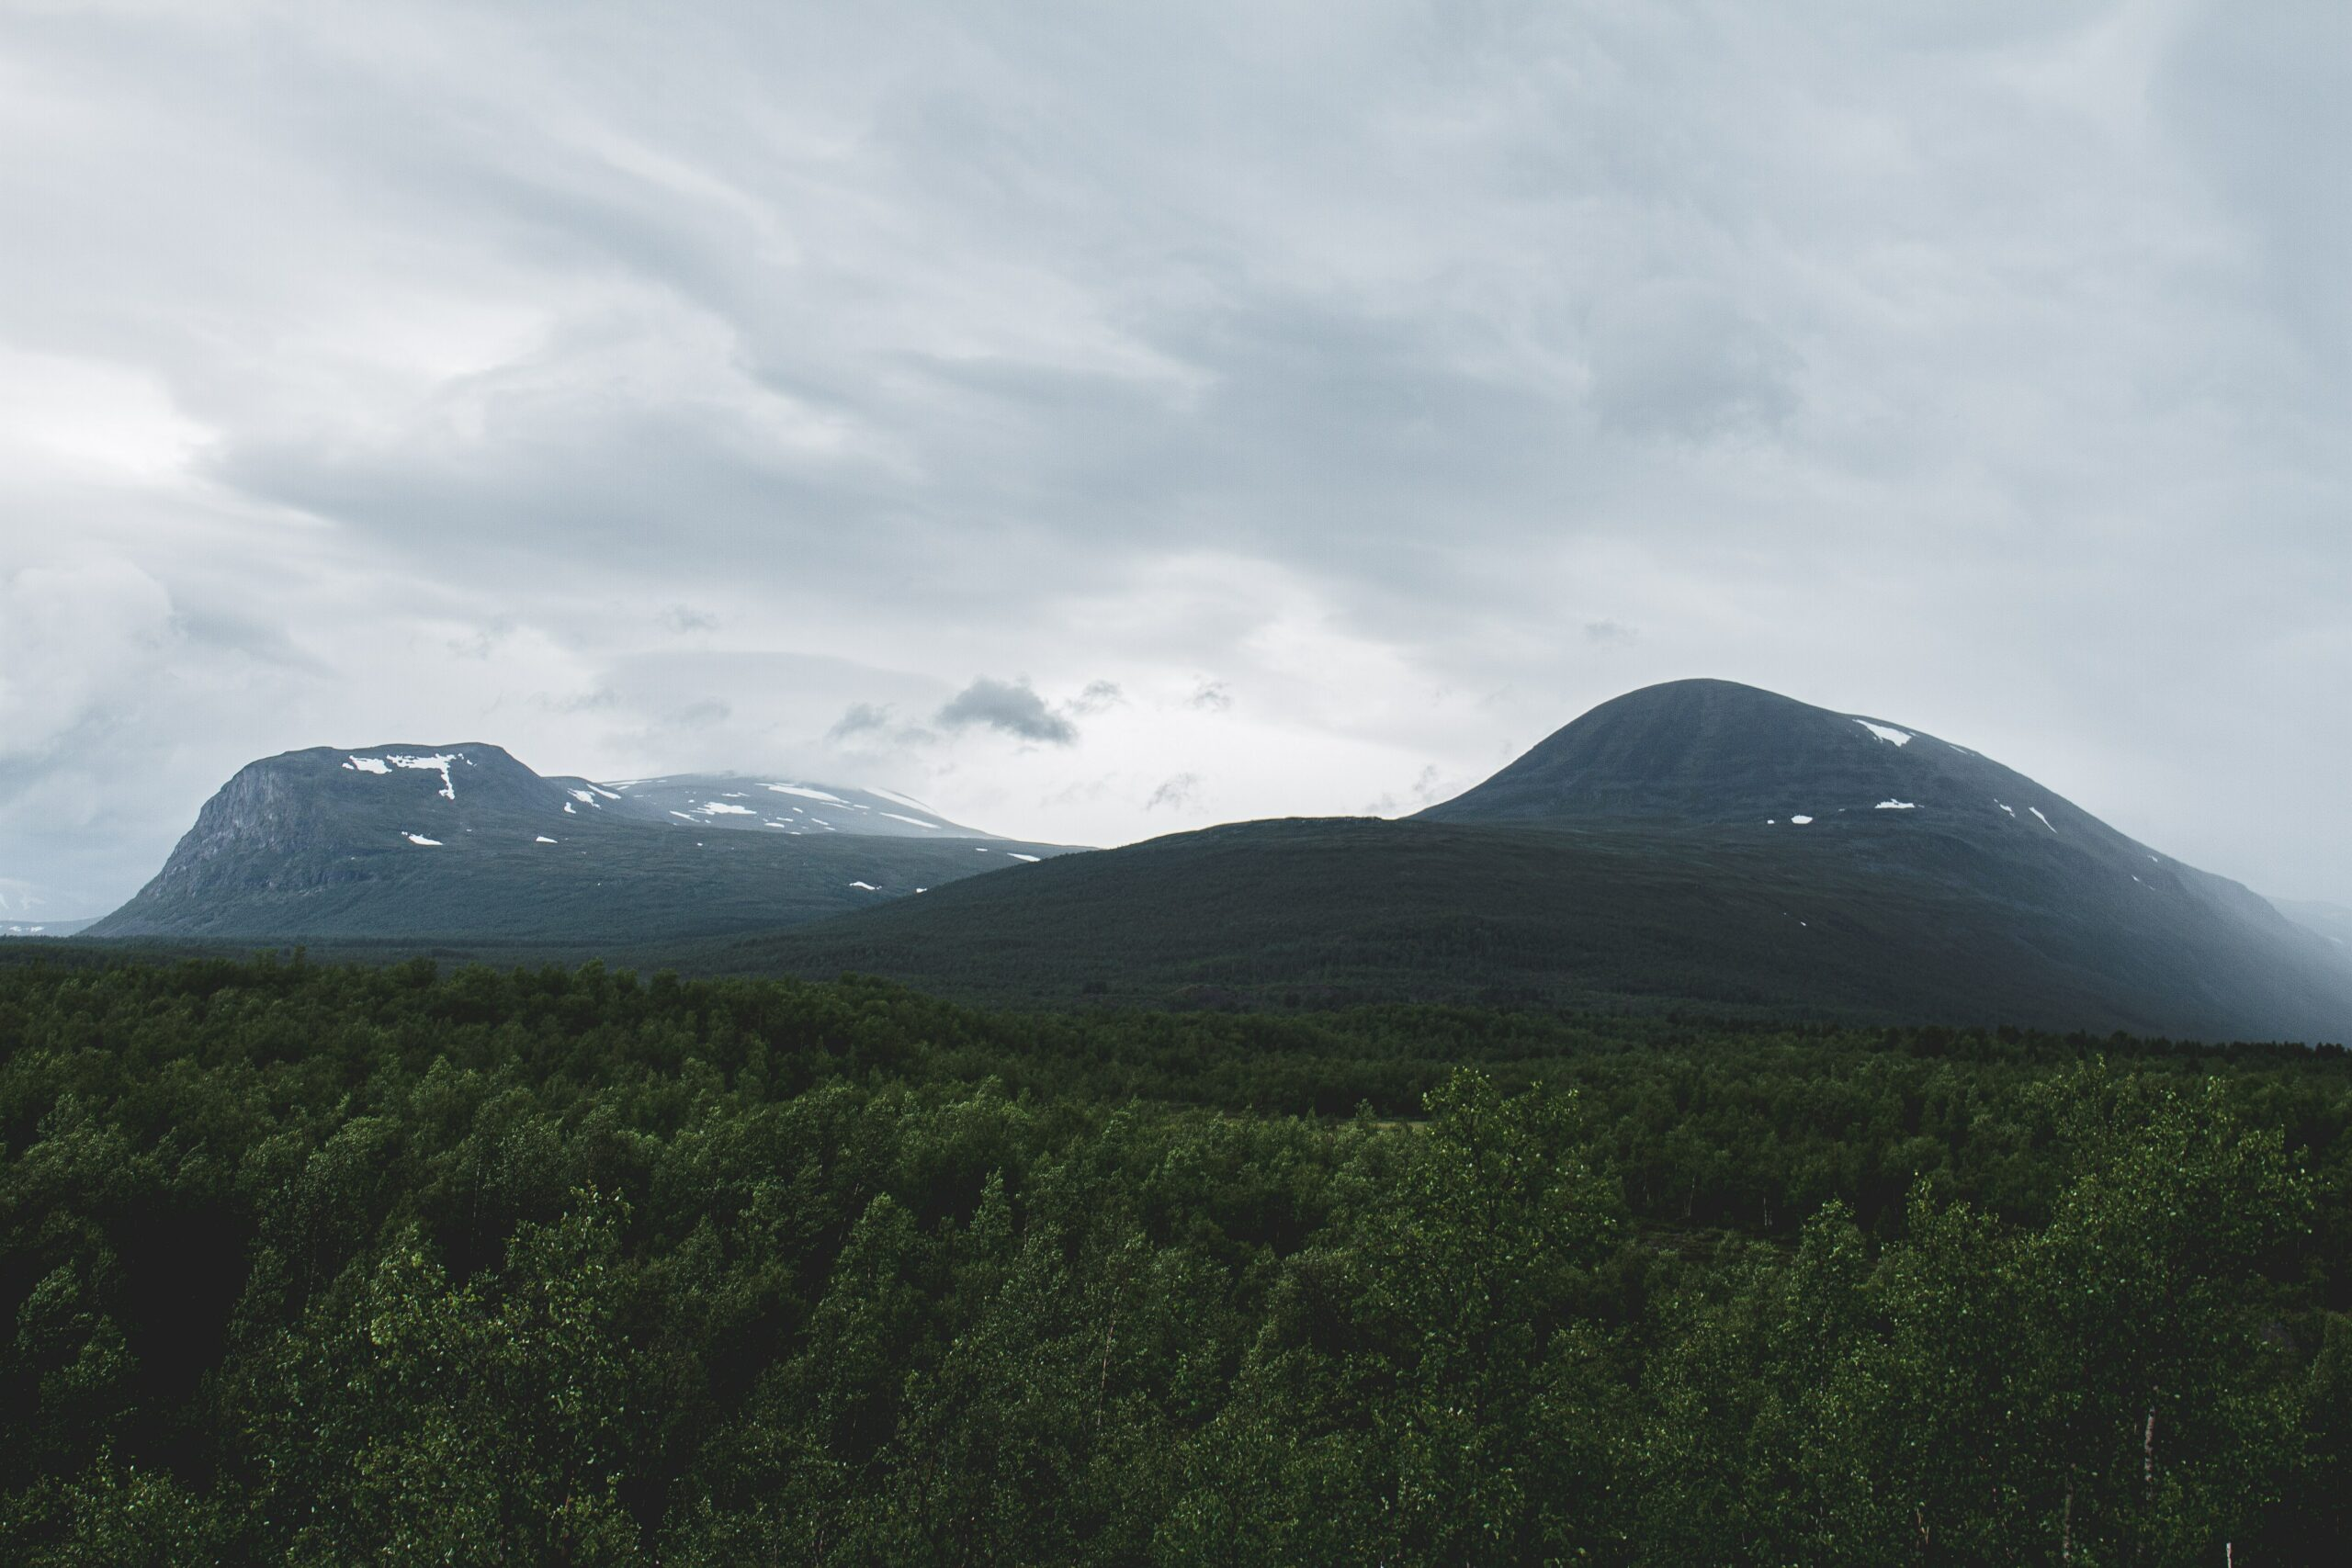 mountain landscape with clouds in kiruna, sweden